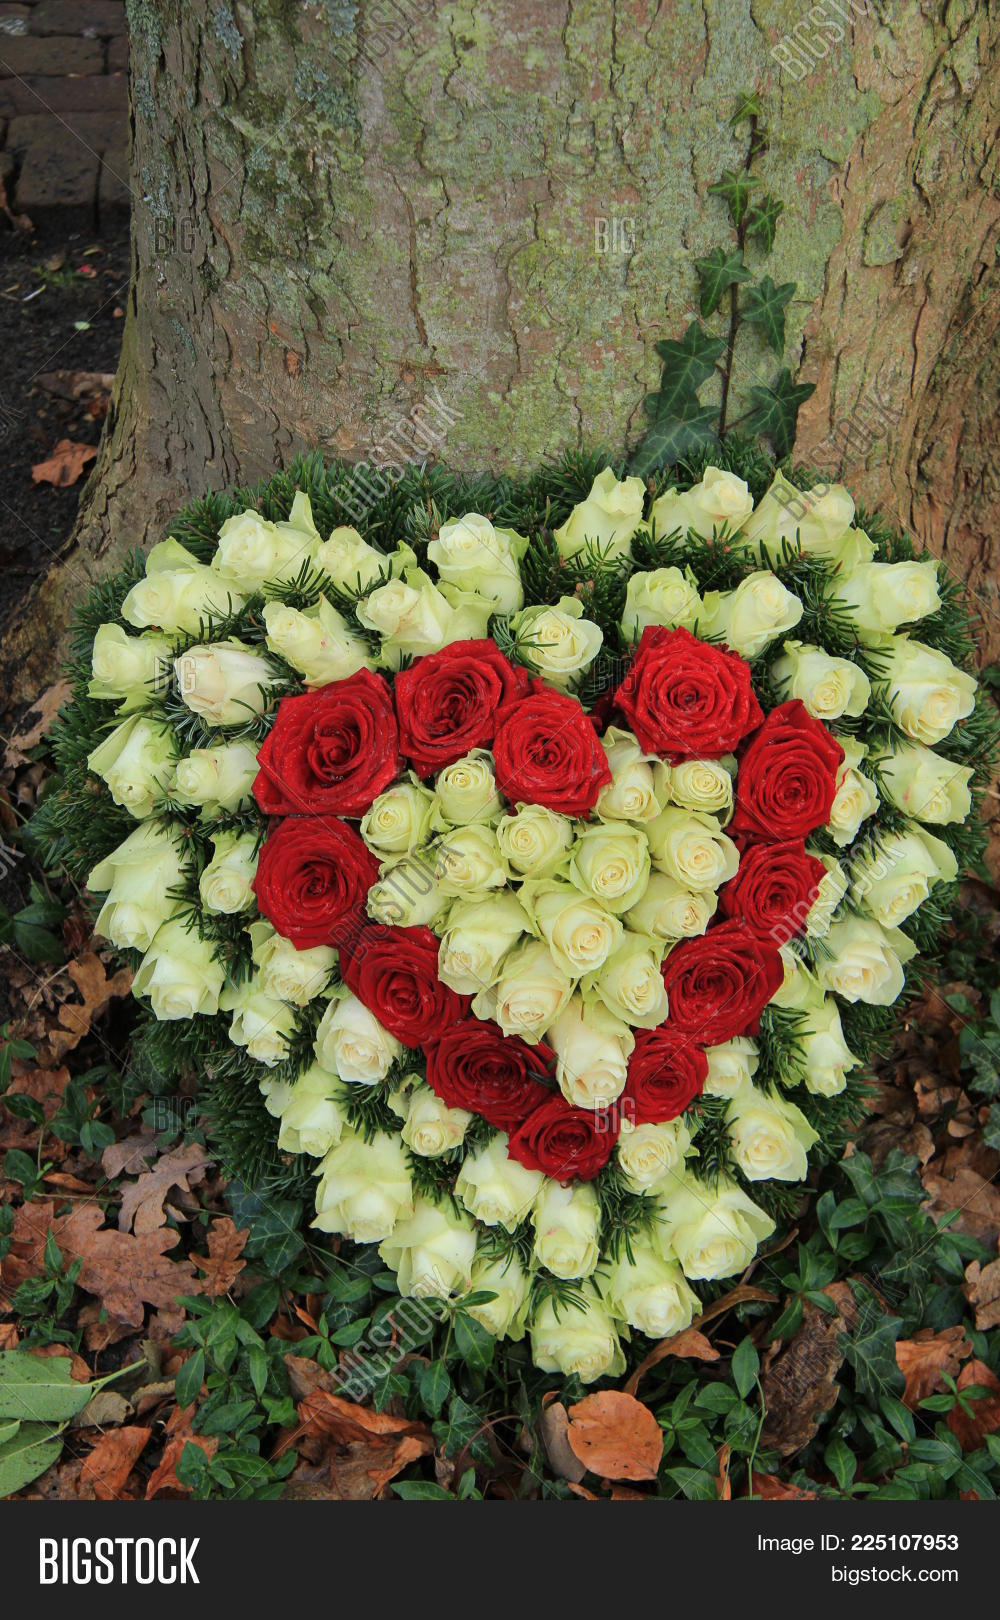 Red white heart shaped image photo free trial bigstock red and white heart shaped sympathy flowers or funeral flowers near a tree izmirmasajfo